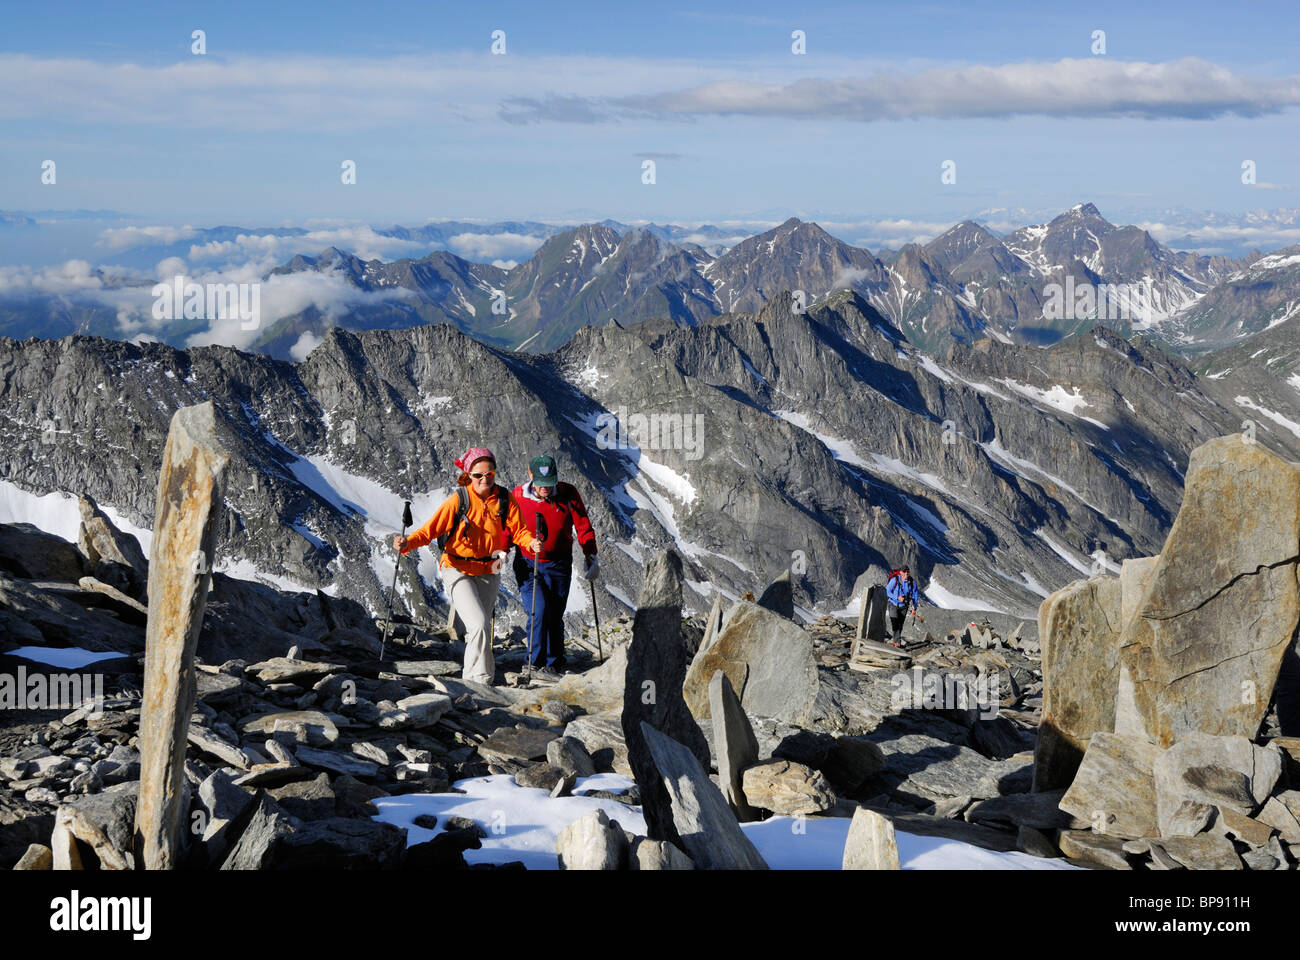 Three mountain hikers ascending to mount Hochfeiler, Zillertal Alps, South Tyrol, Italy Stock Photo